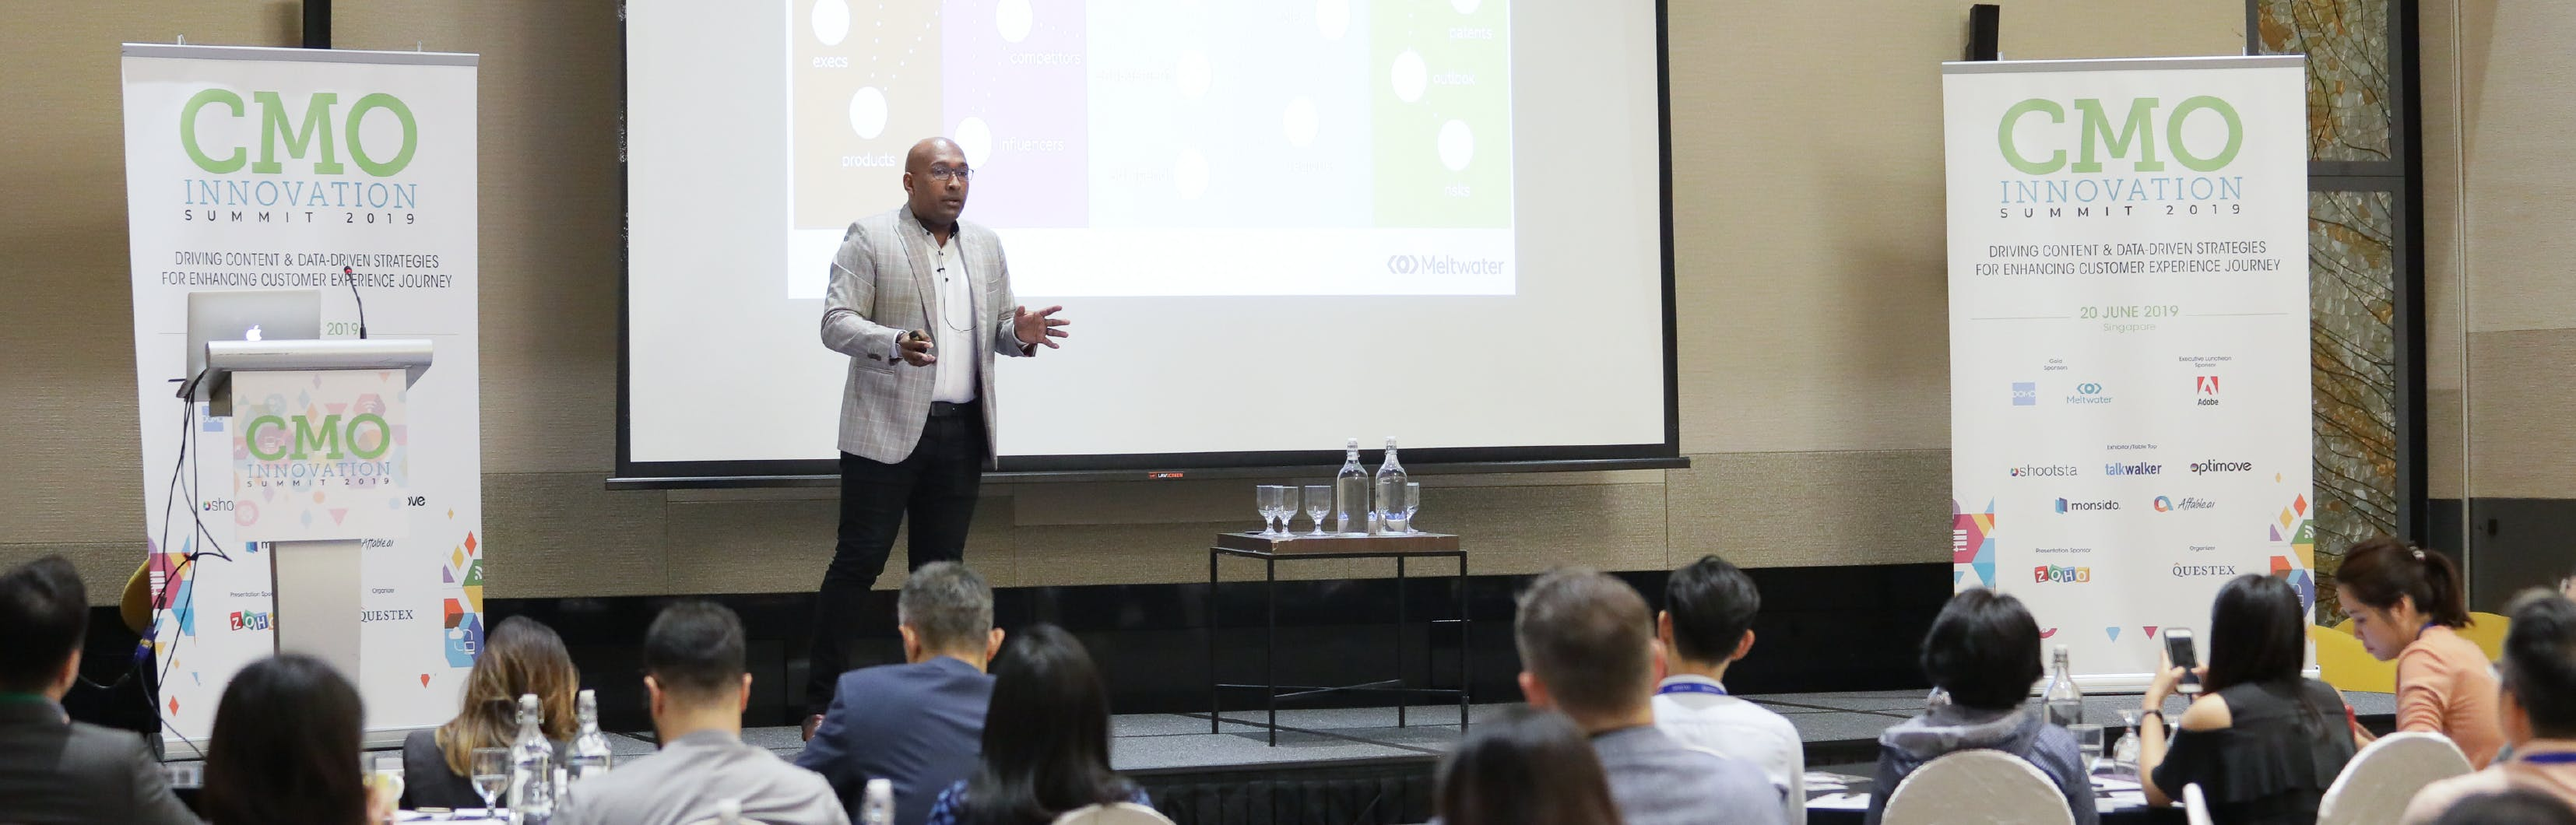 Image of a man presenting at an event